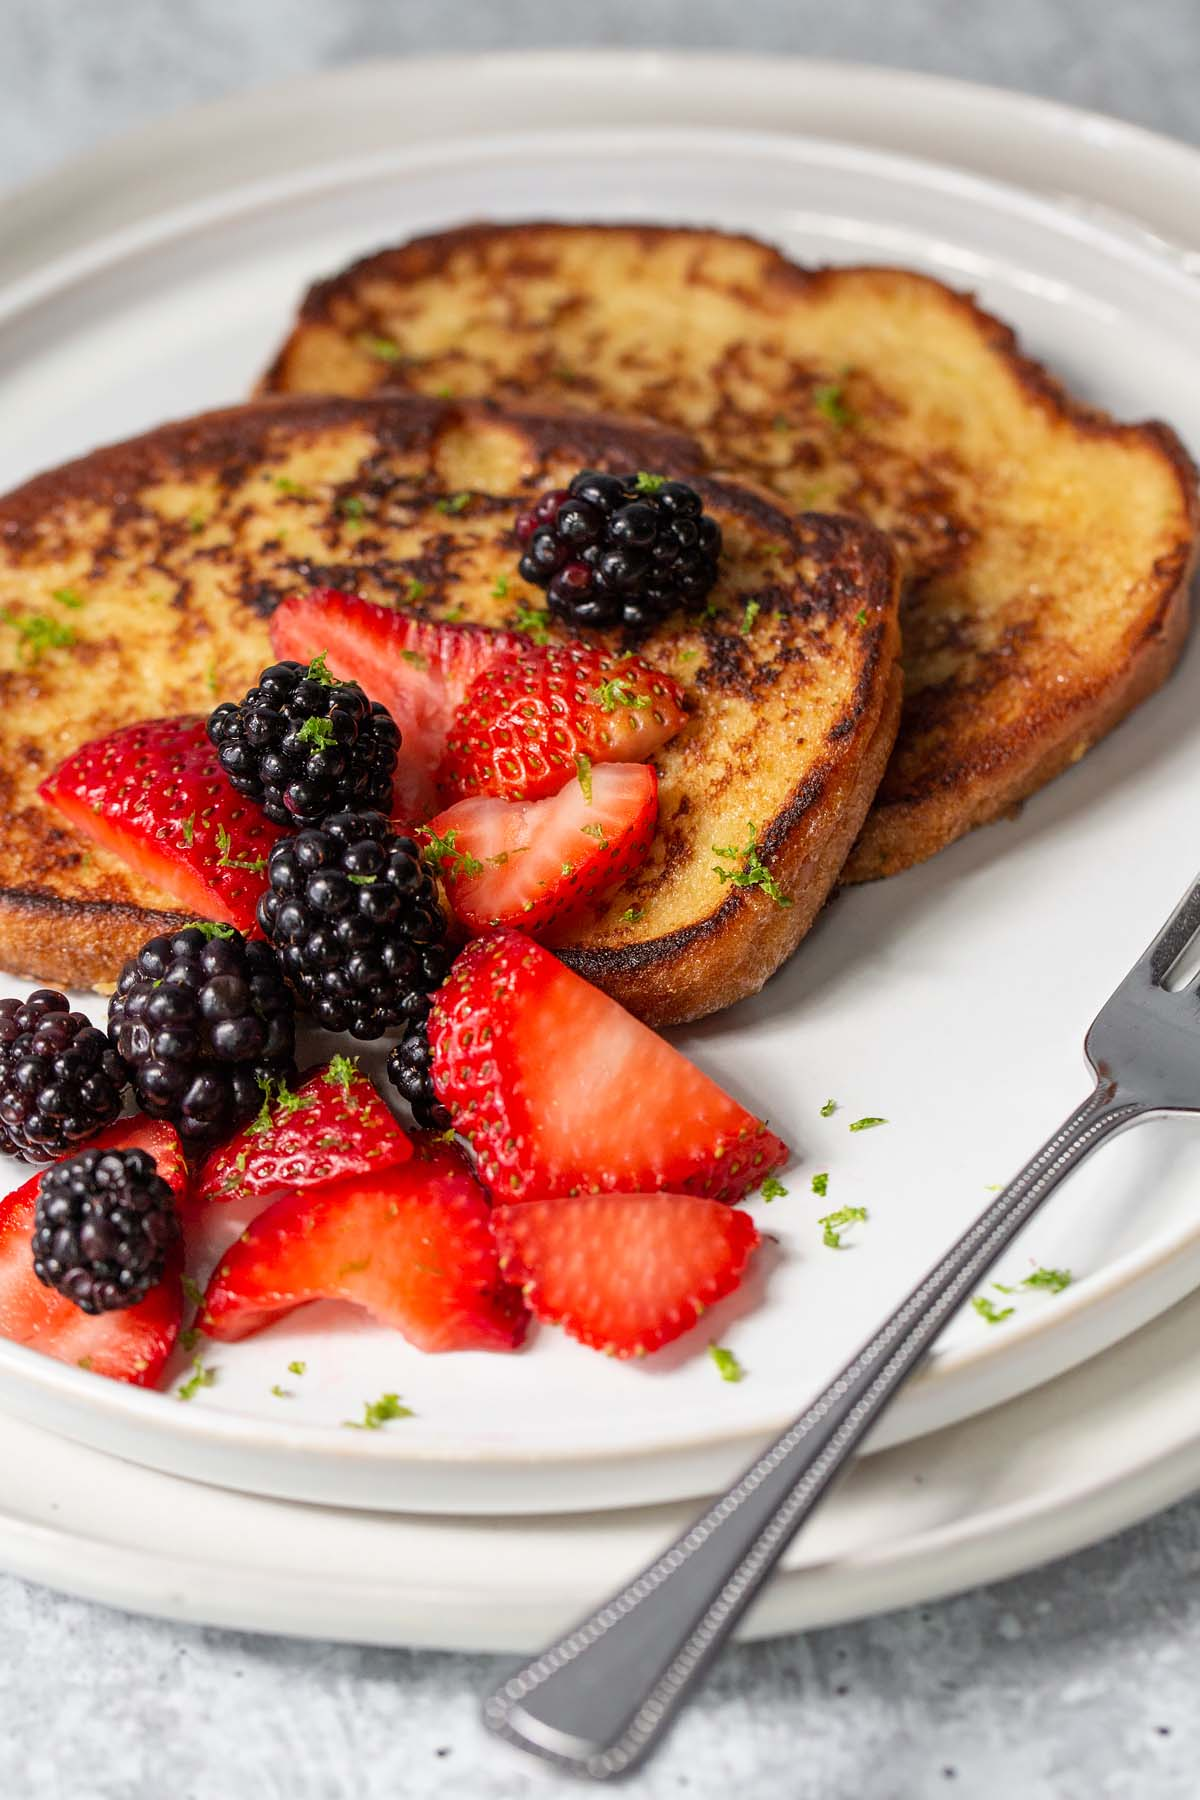 french toast topped with blackberries and sliced strawberries